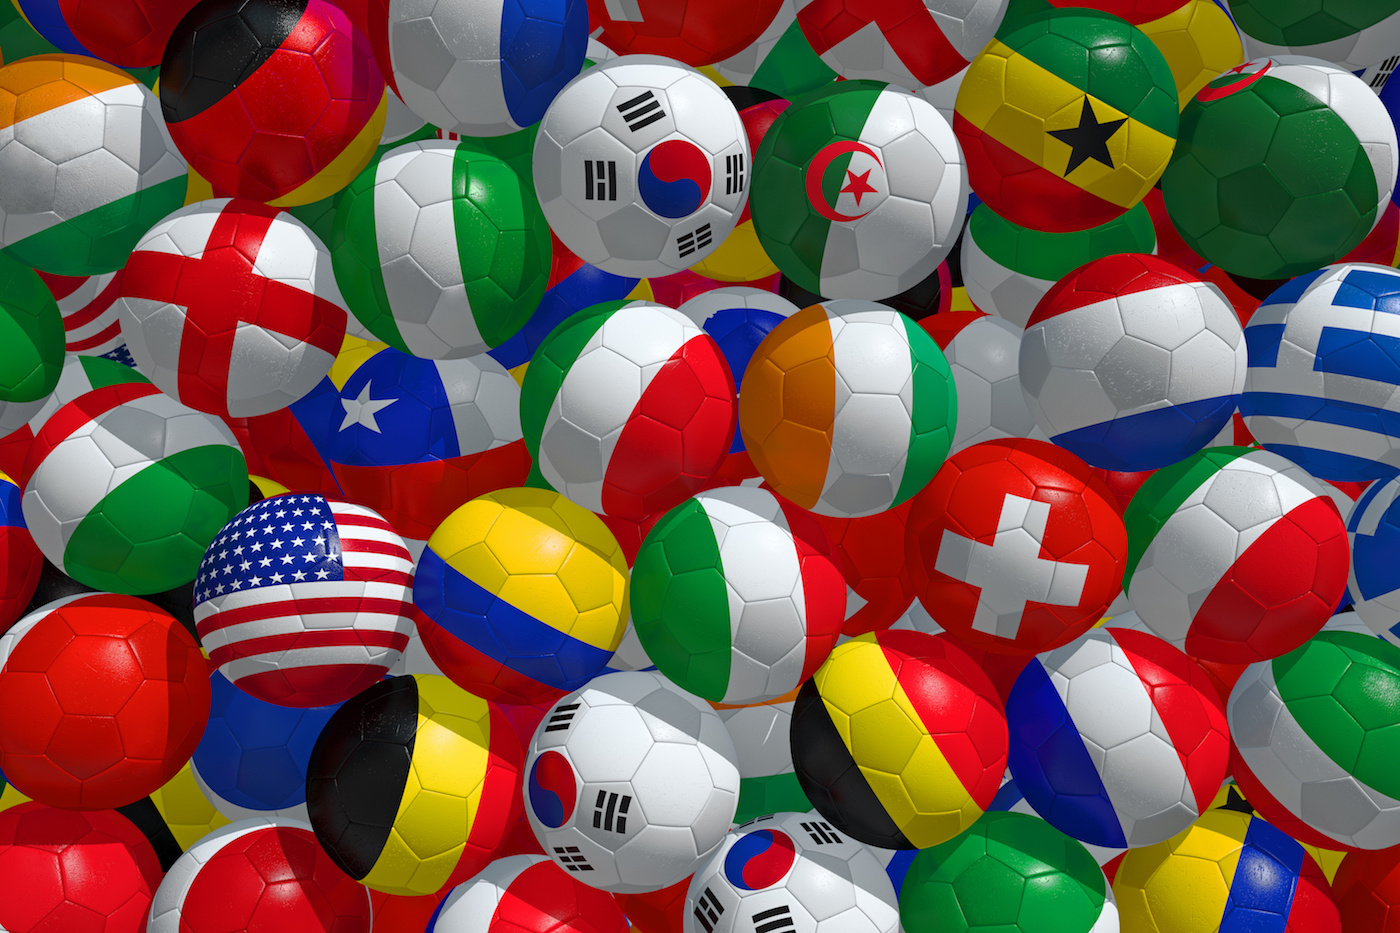 2014 FIFA World Cup Brazil. Soccer balls with flags of participating countries.